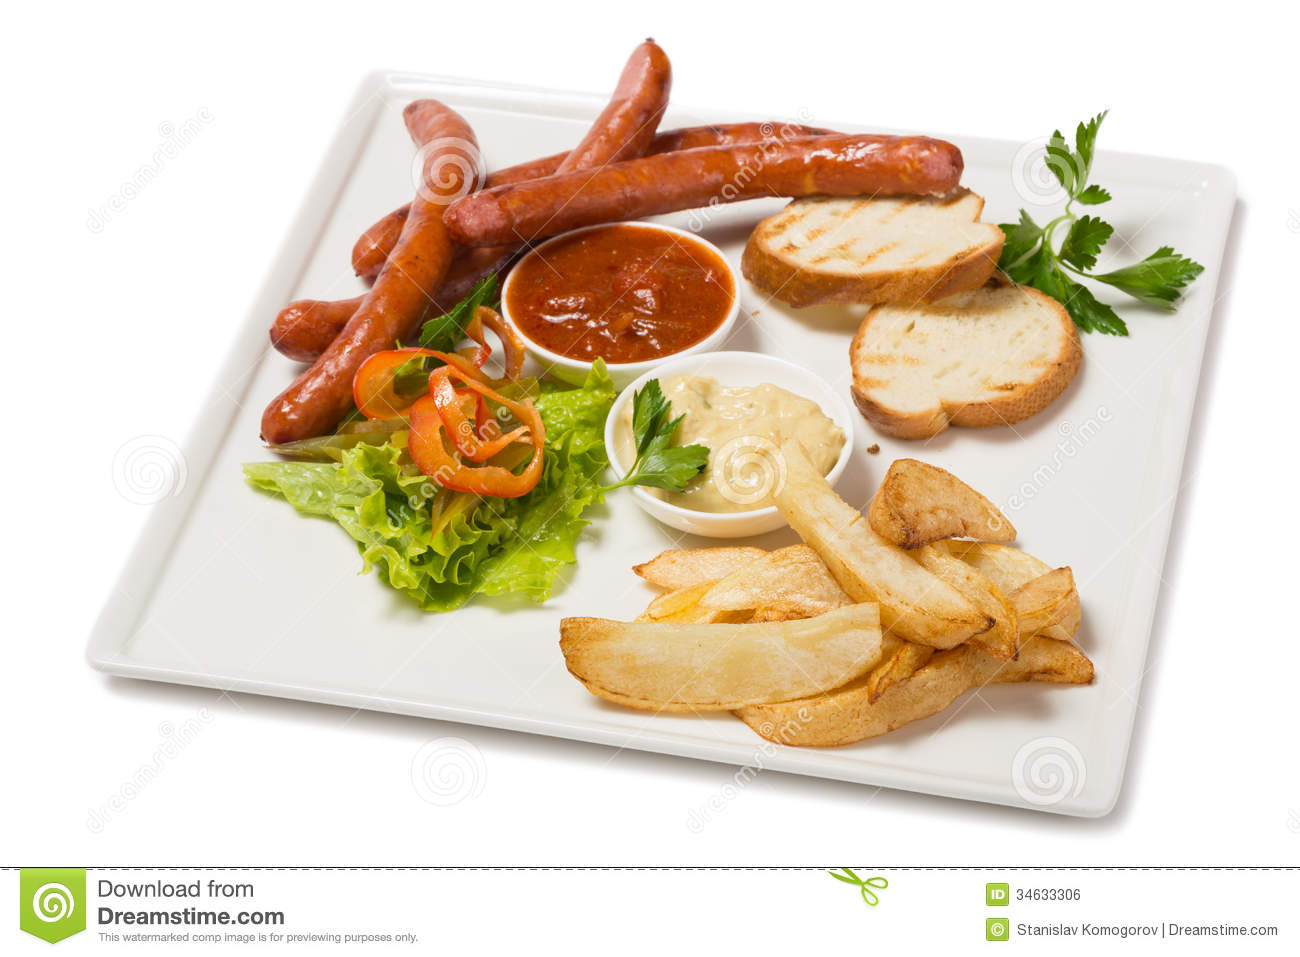 Spicy smoked sausage with cheese and fry potatoes in a pan and salad.